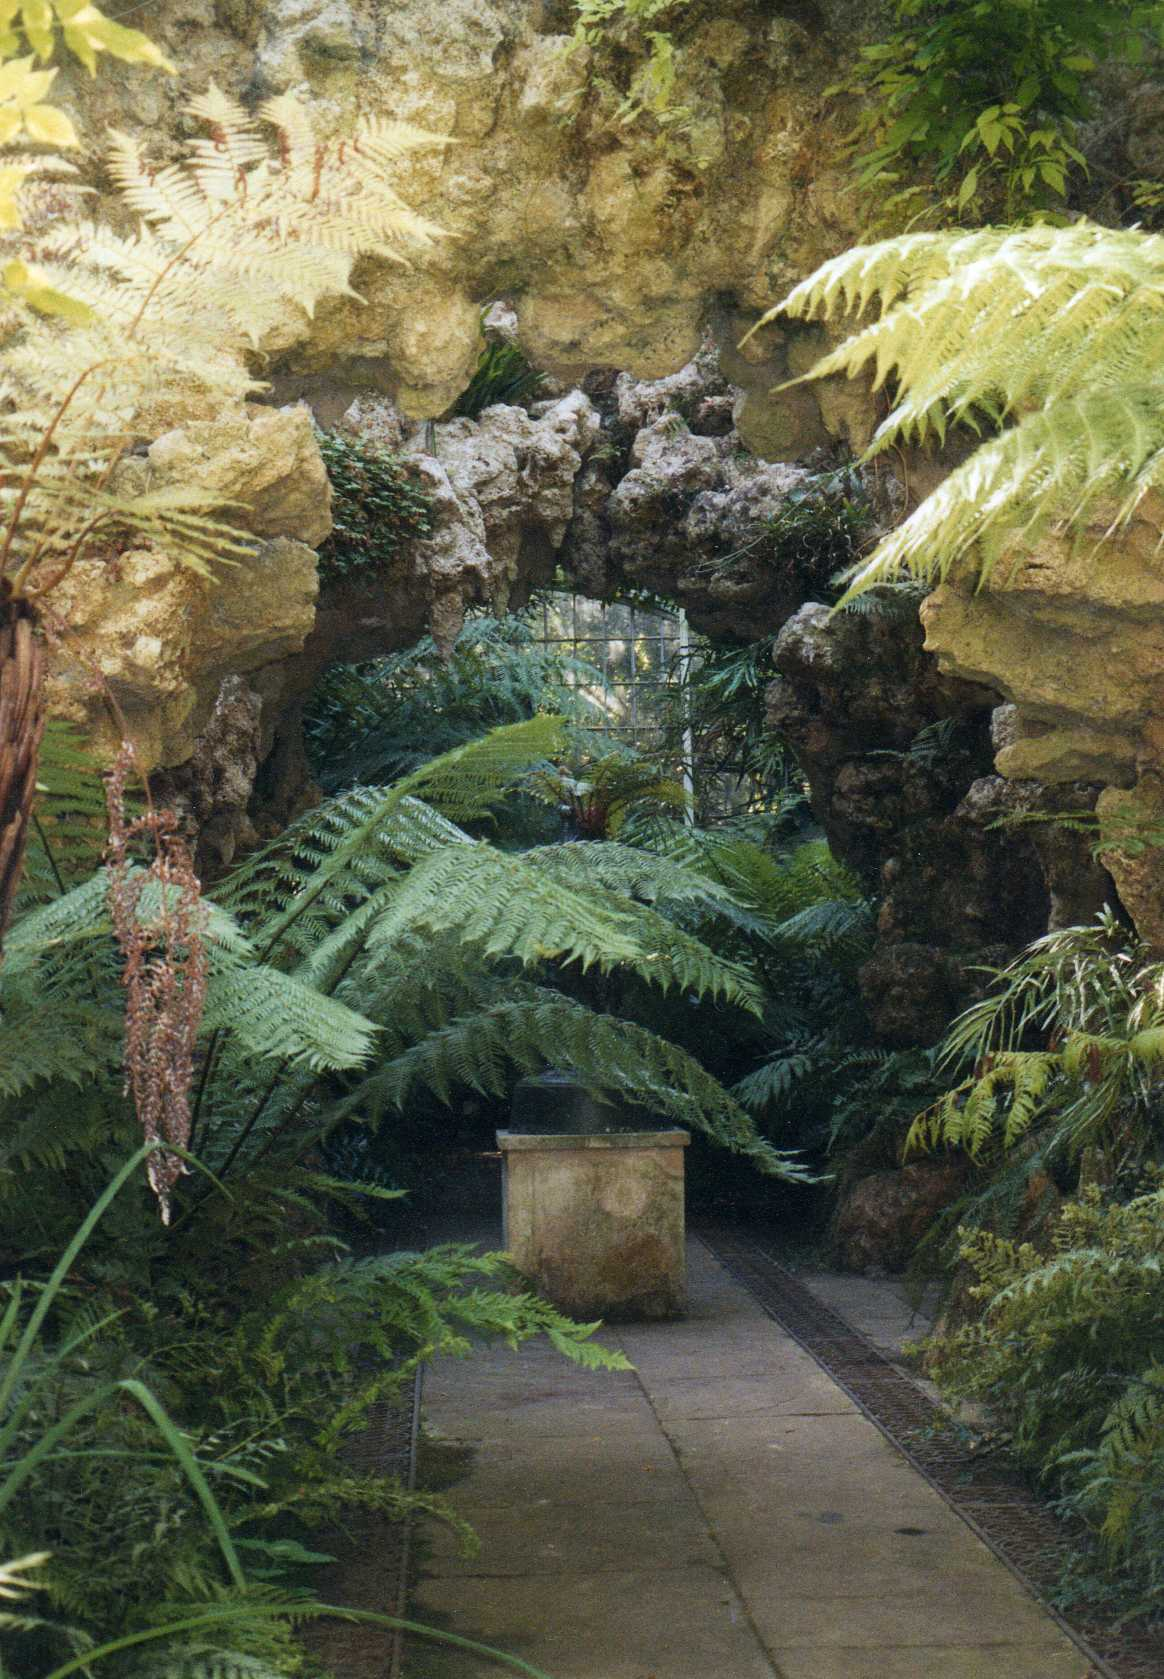 Fernery in the Swiss Garden at Old Warden, Bedfordshire.